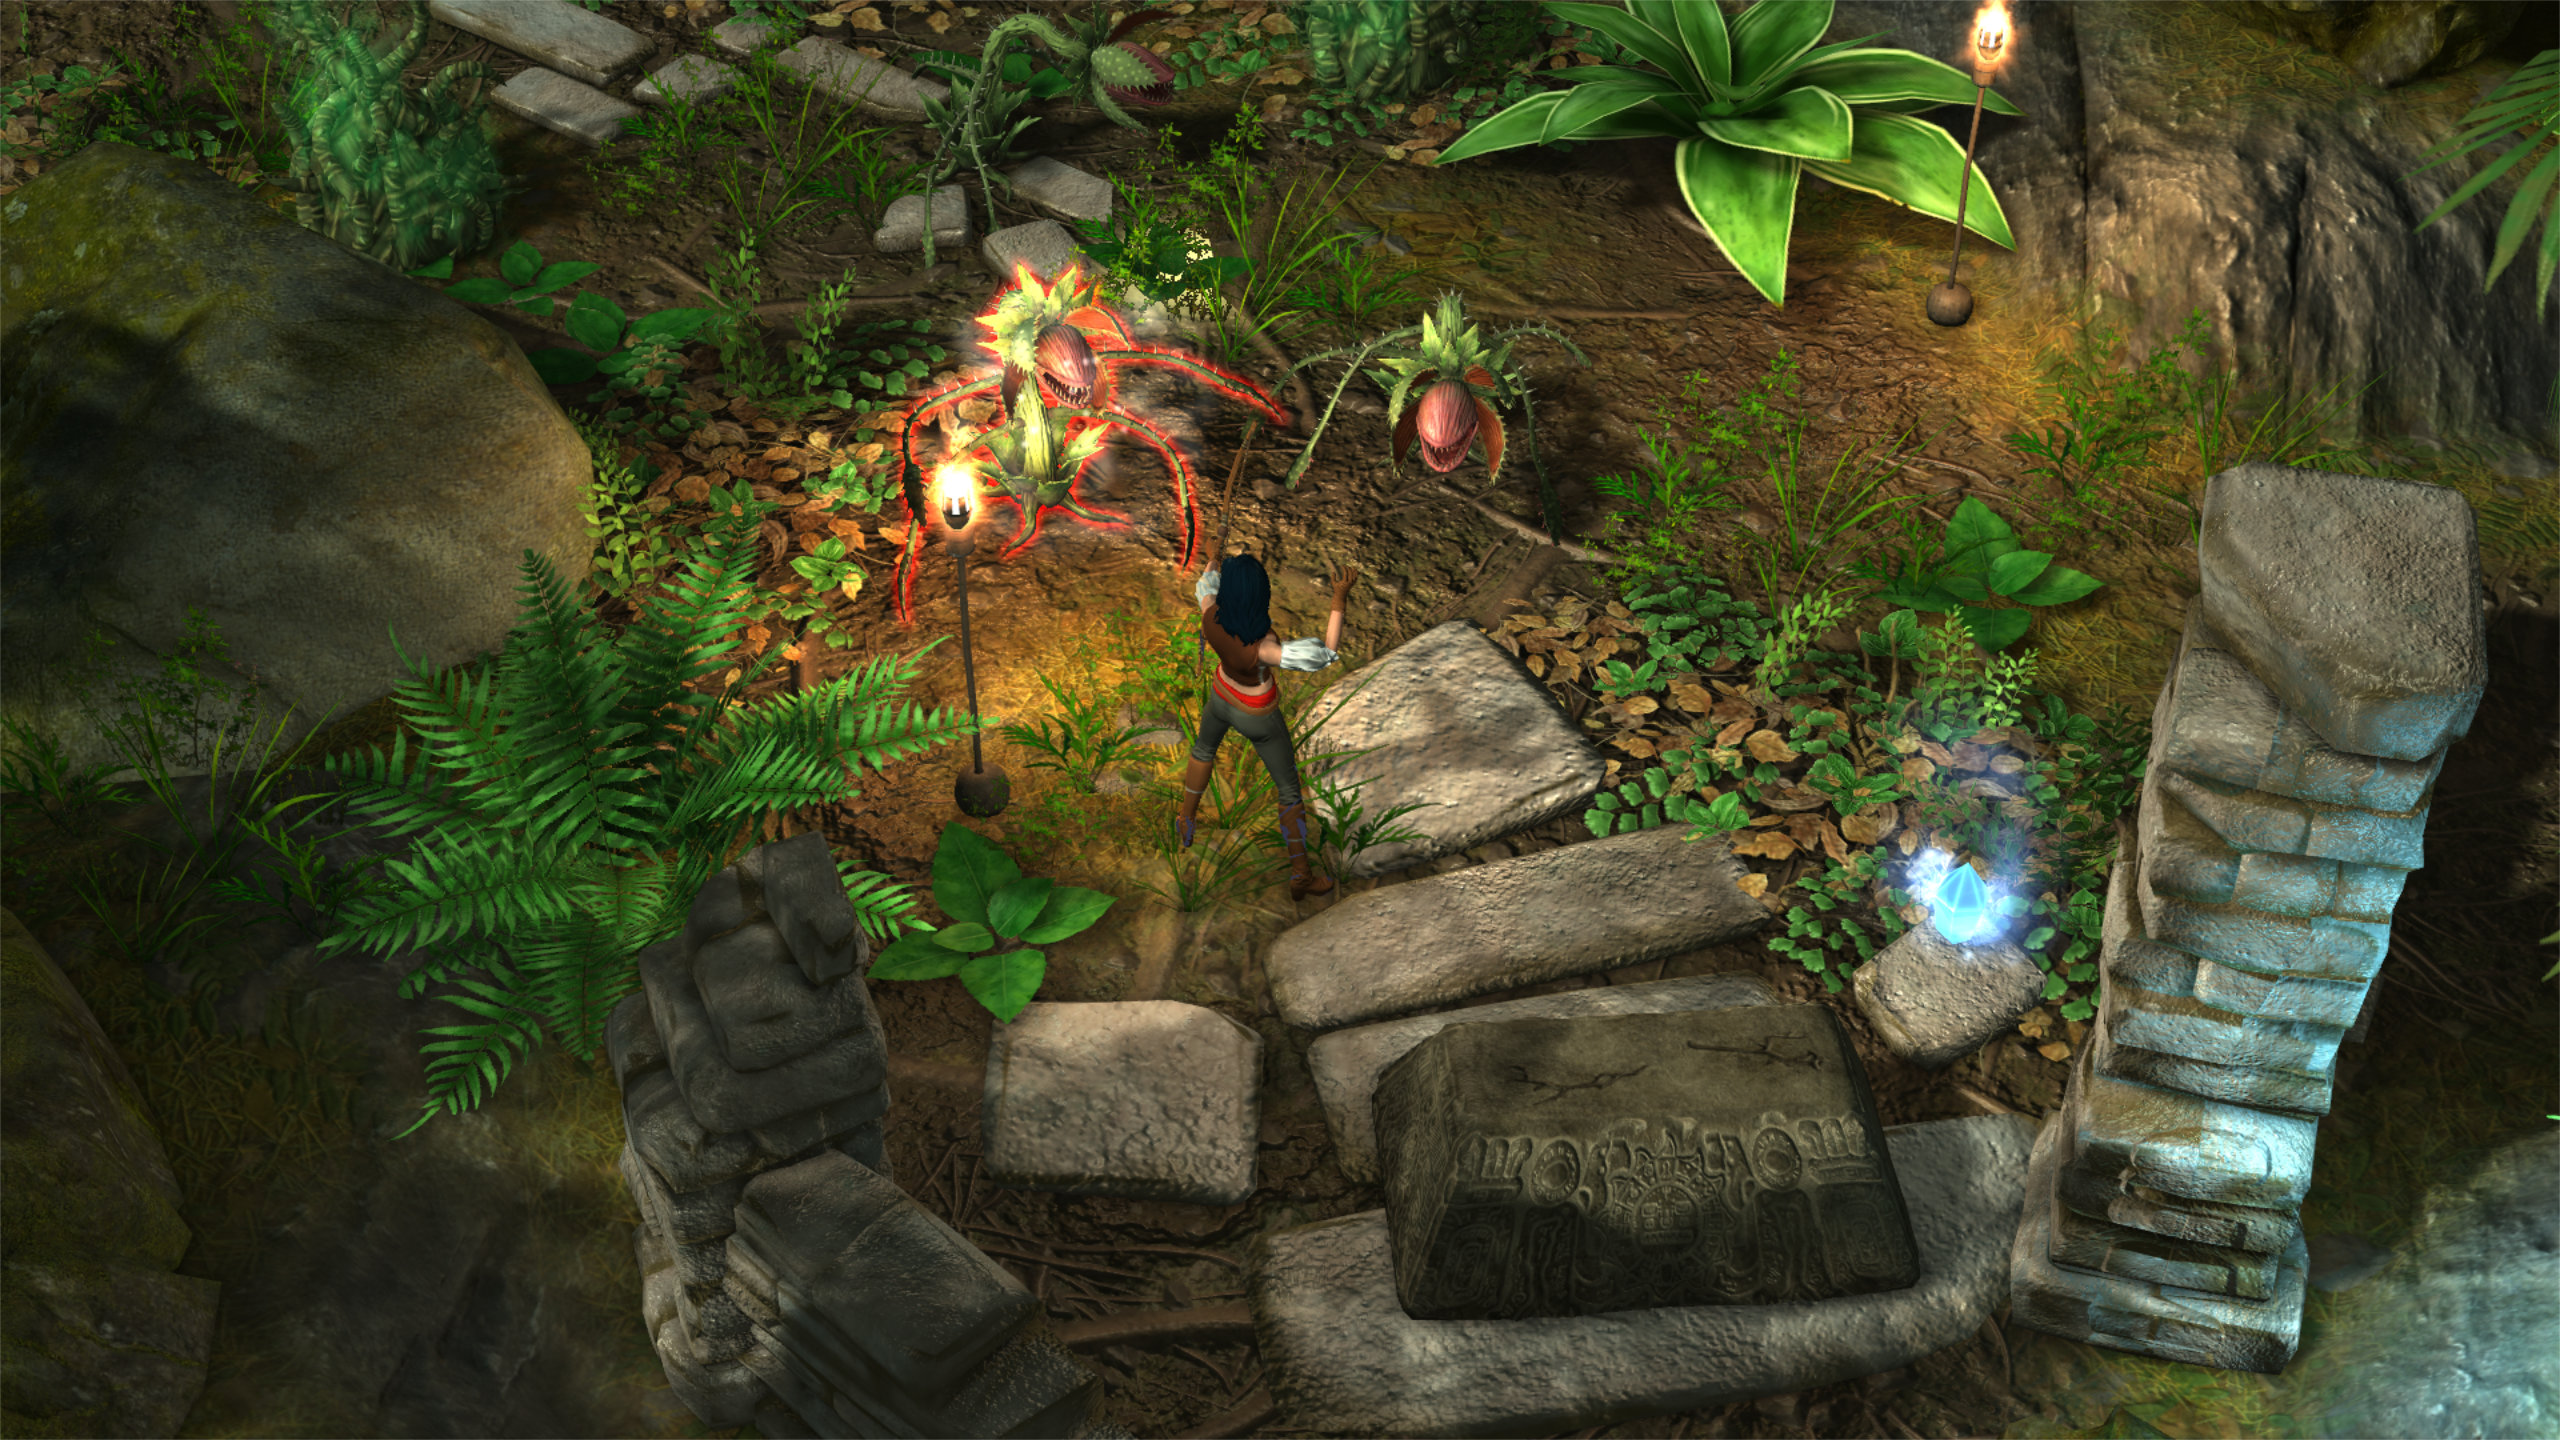 The vibrant Incan world of Aluna: Sentinel of the Shards, with the main character fighting two carnivorous plants. There are stone ruins and overgrown green plants surrounding the character and enemies. The characterr has dark hair, and is wearing a brown top with grey bottoms.